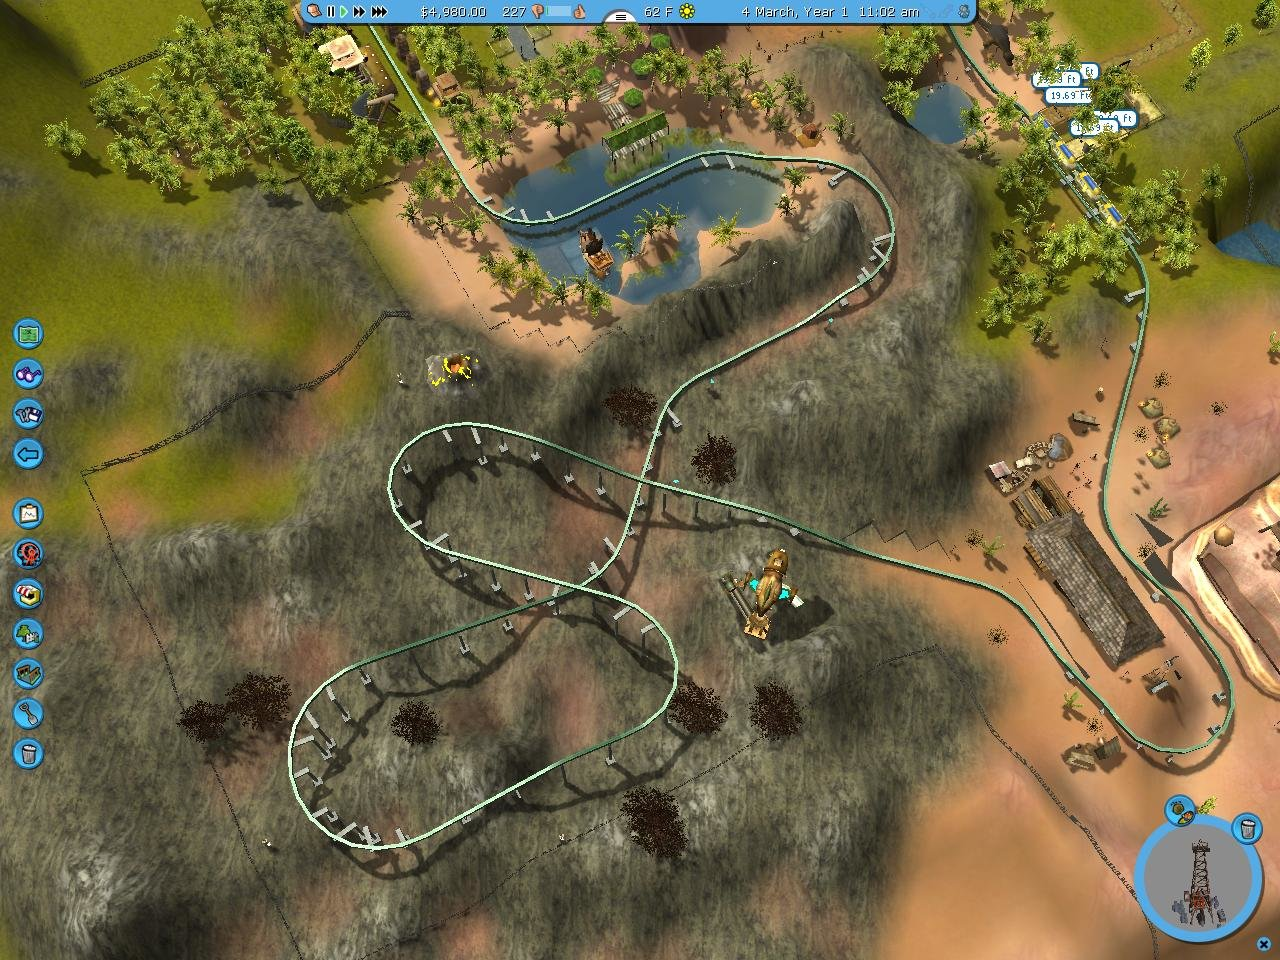 Download zoo tycoon 3 for pc | Peatix